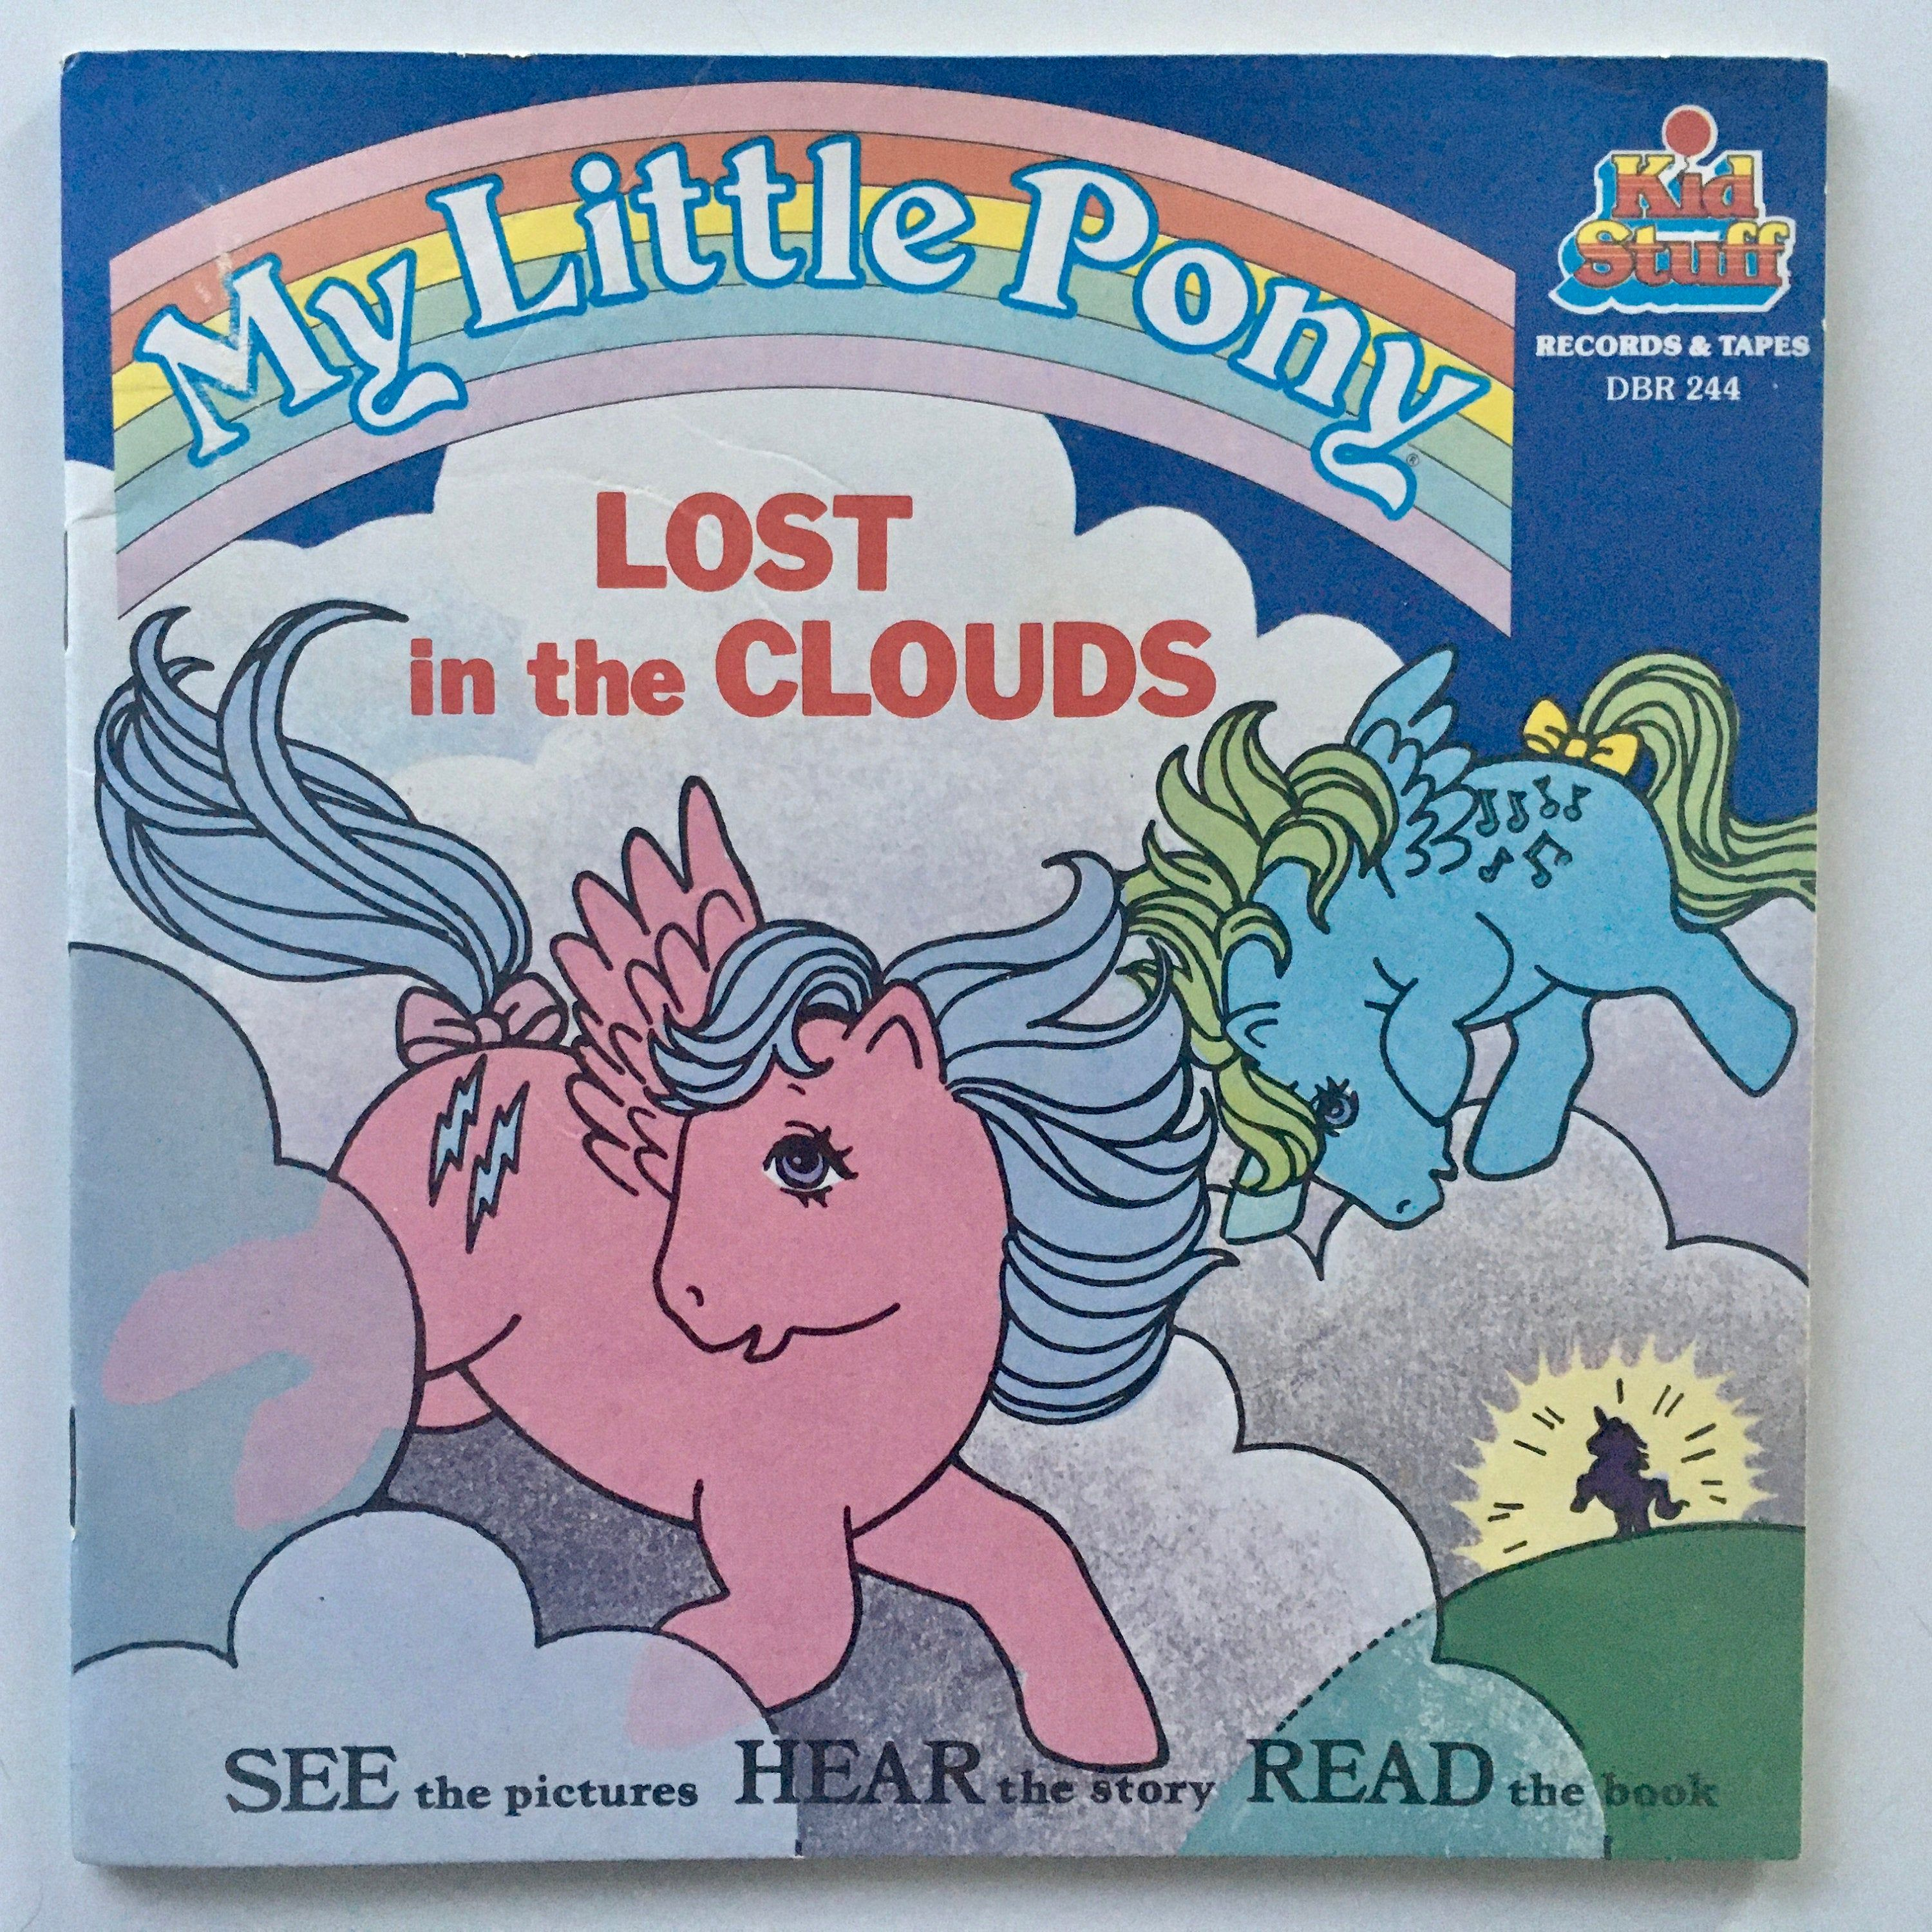 My little pony lost in the clouds 7 vinyl record 24